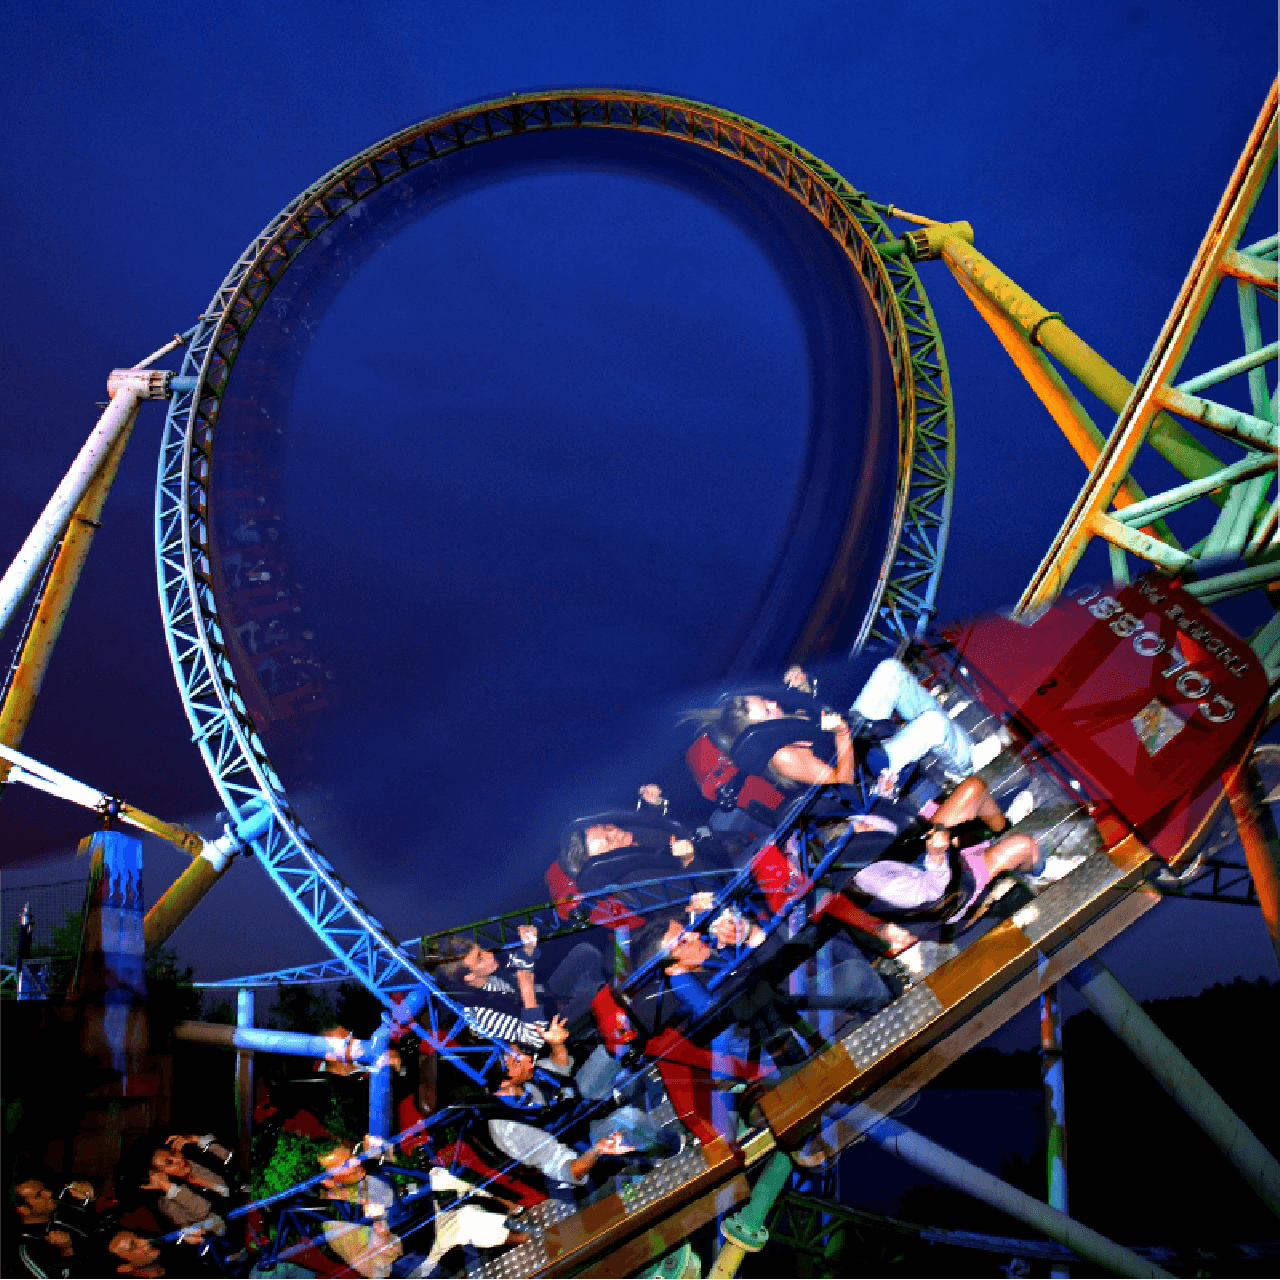 Rollercoasters at Night